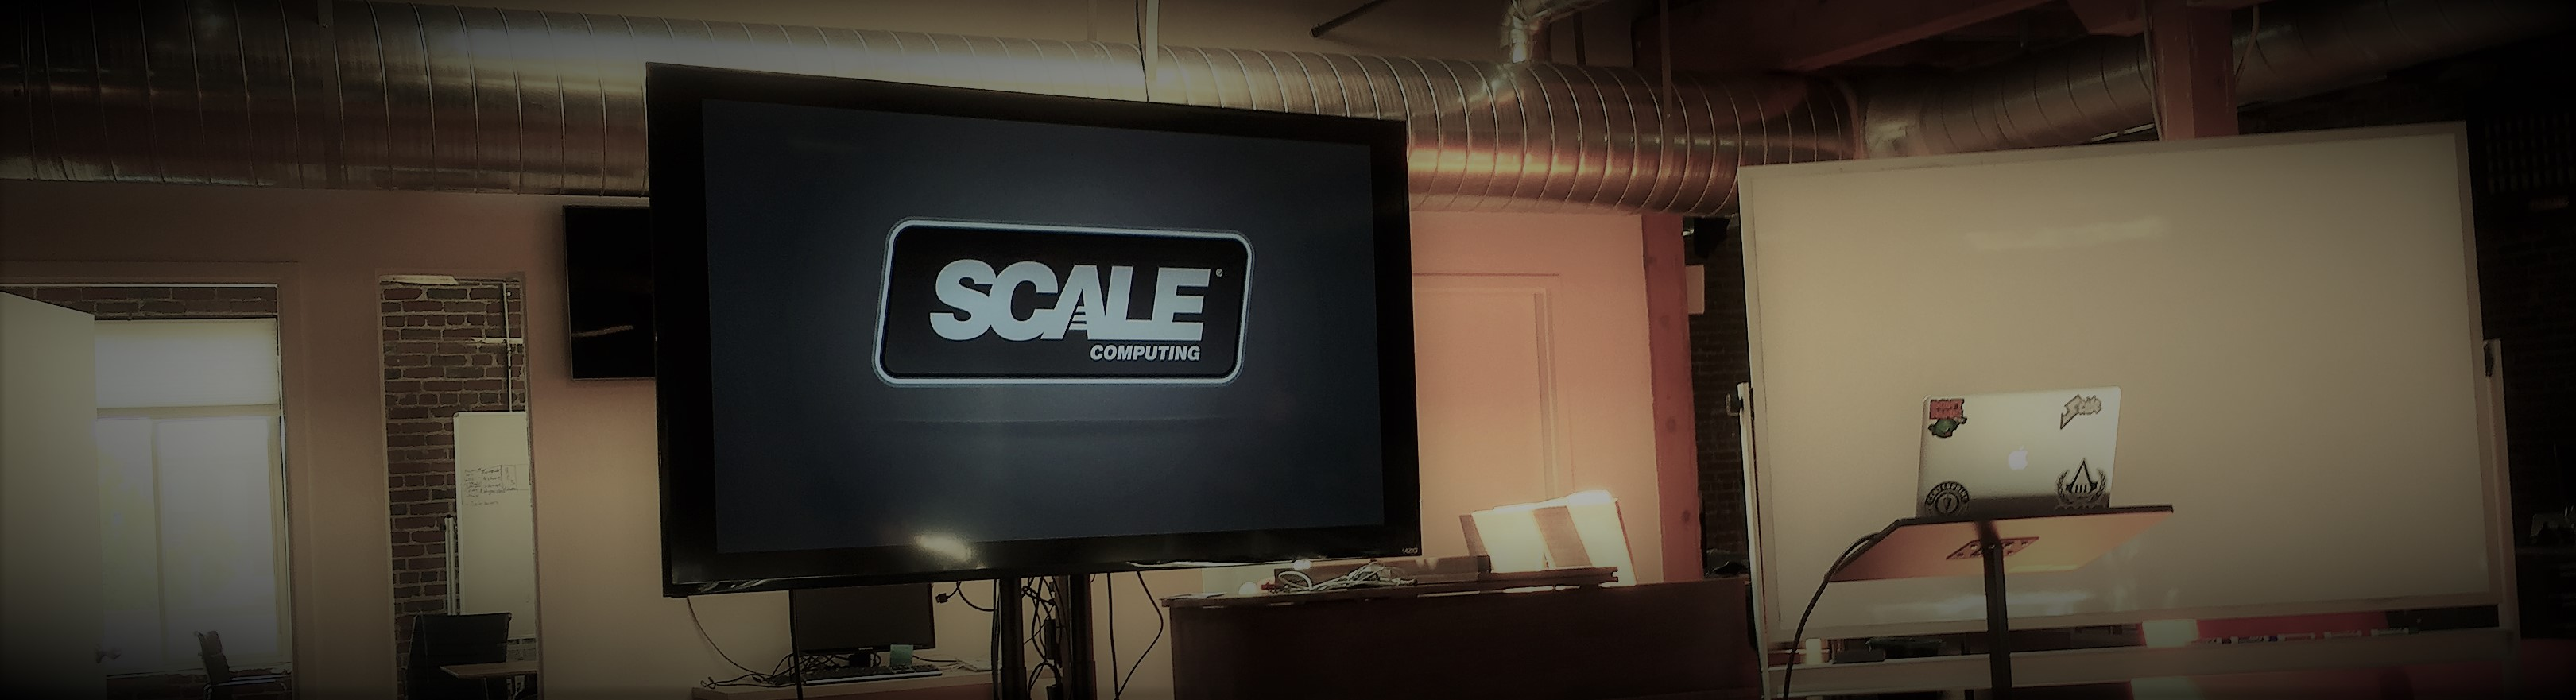 scale_banner